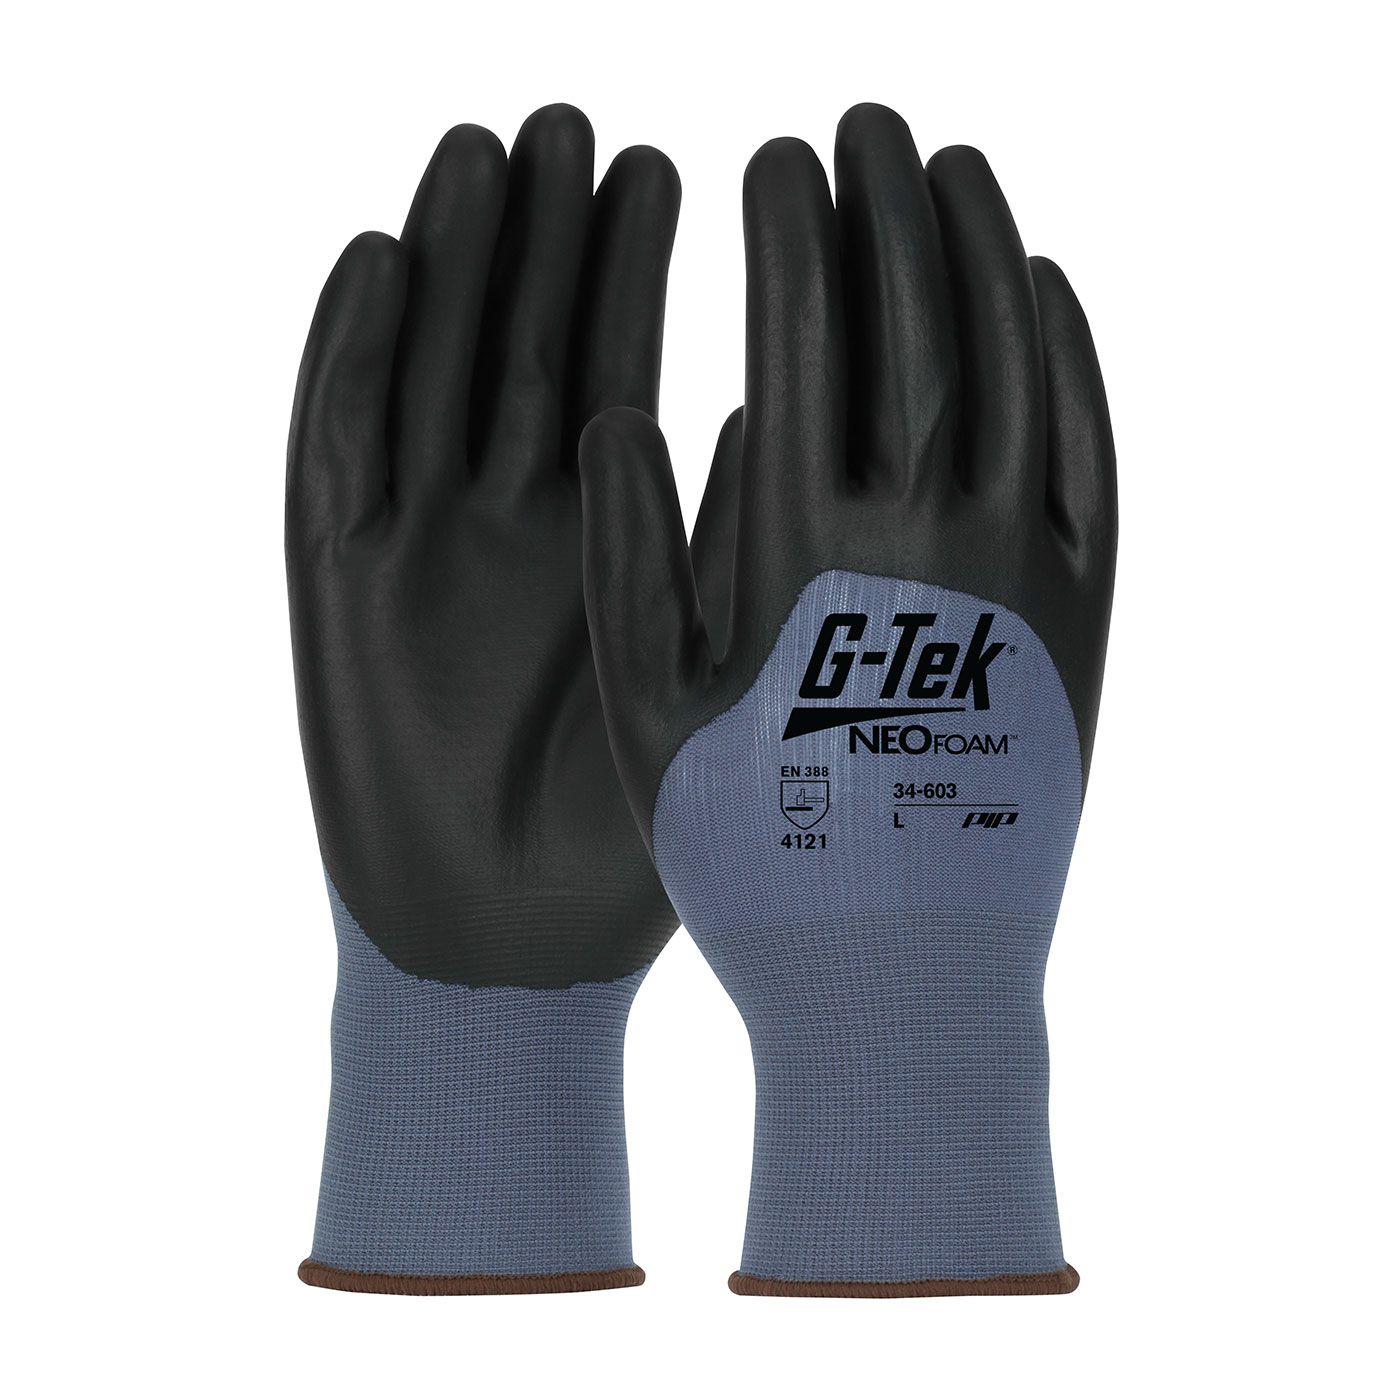 #34-603 PIP® G-Tek® Seamless Nylon Knit Gloves with Neofoam Coated Palms, Fingers and Knuckles